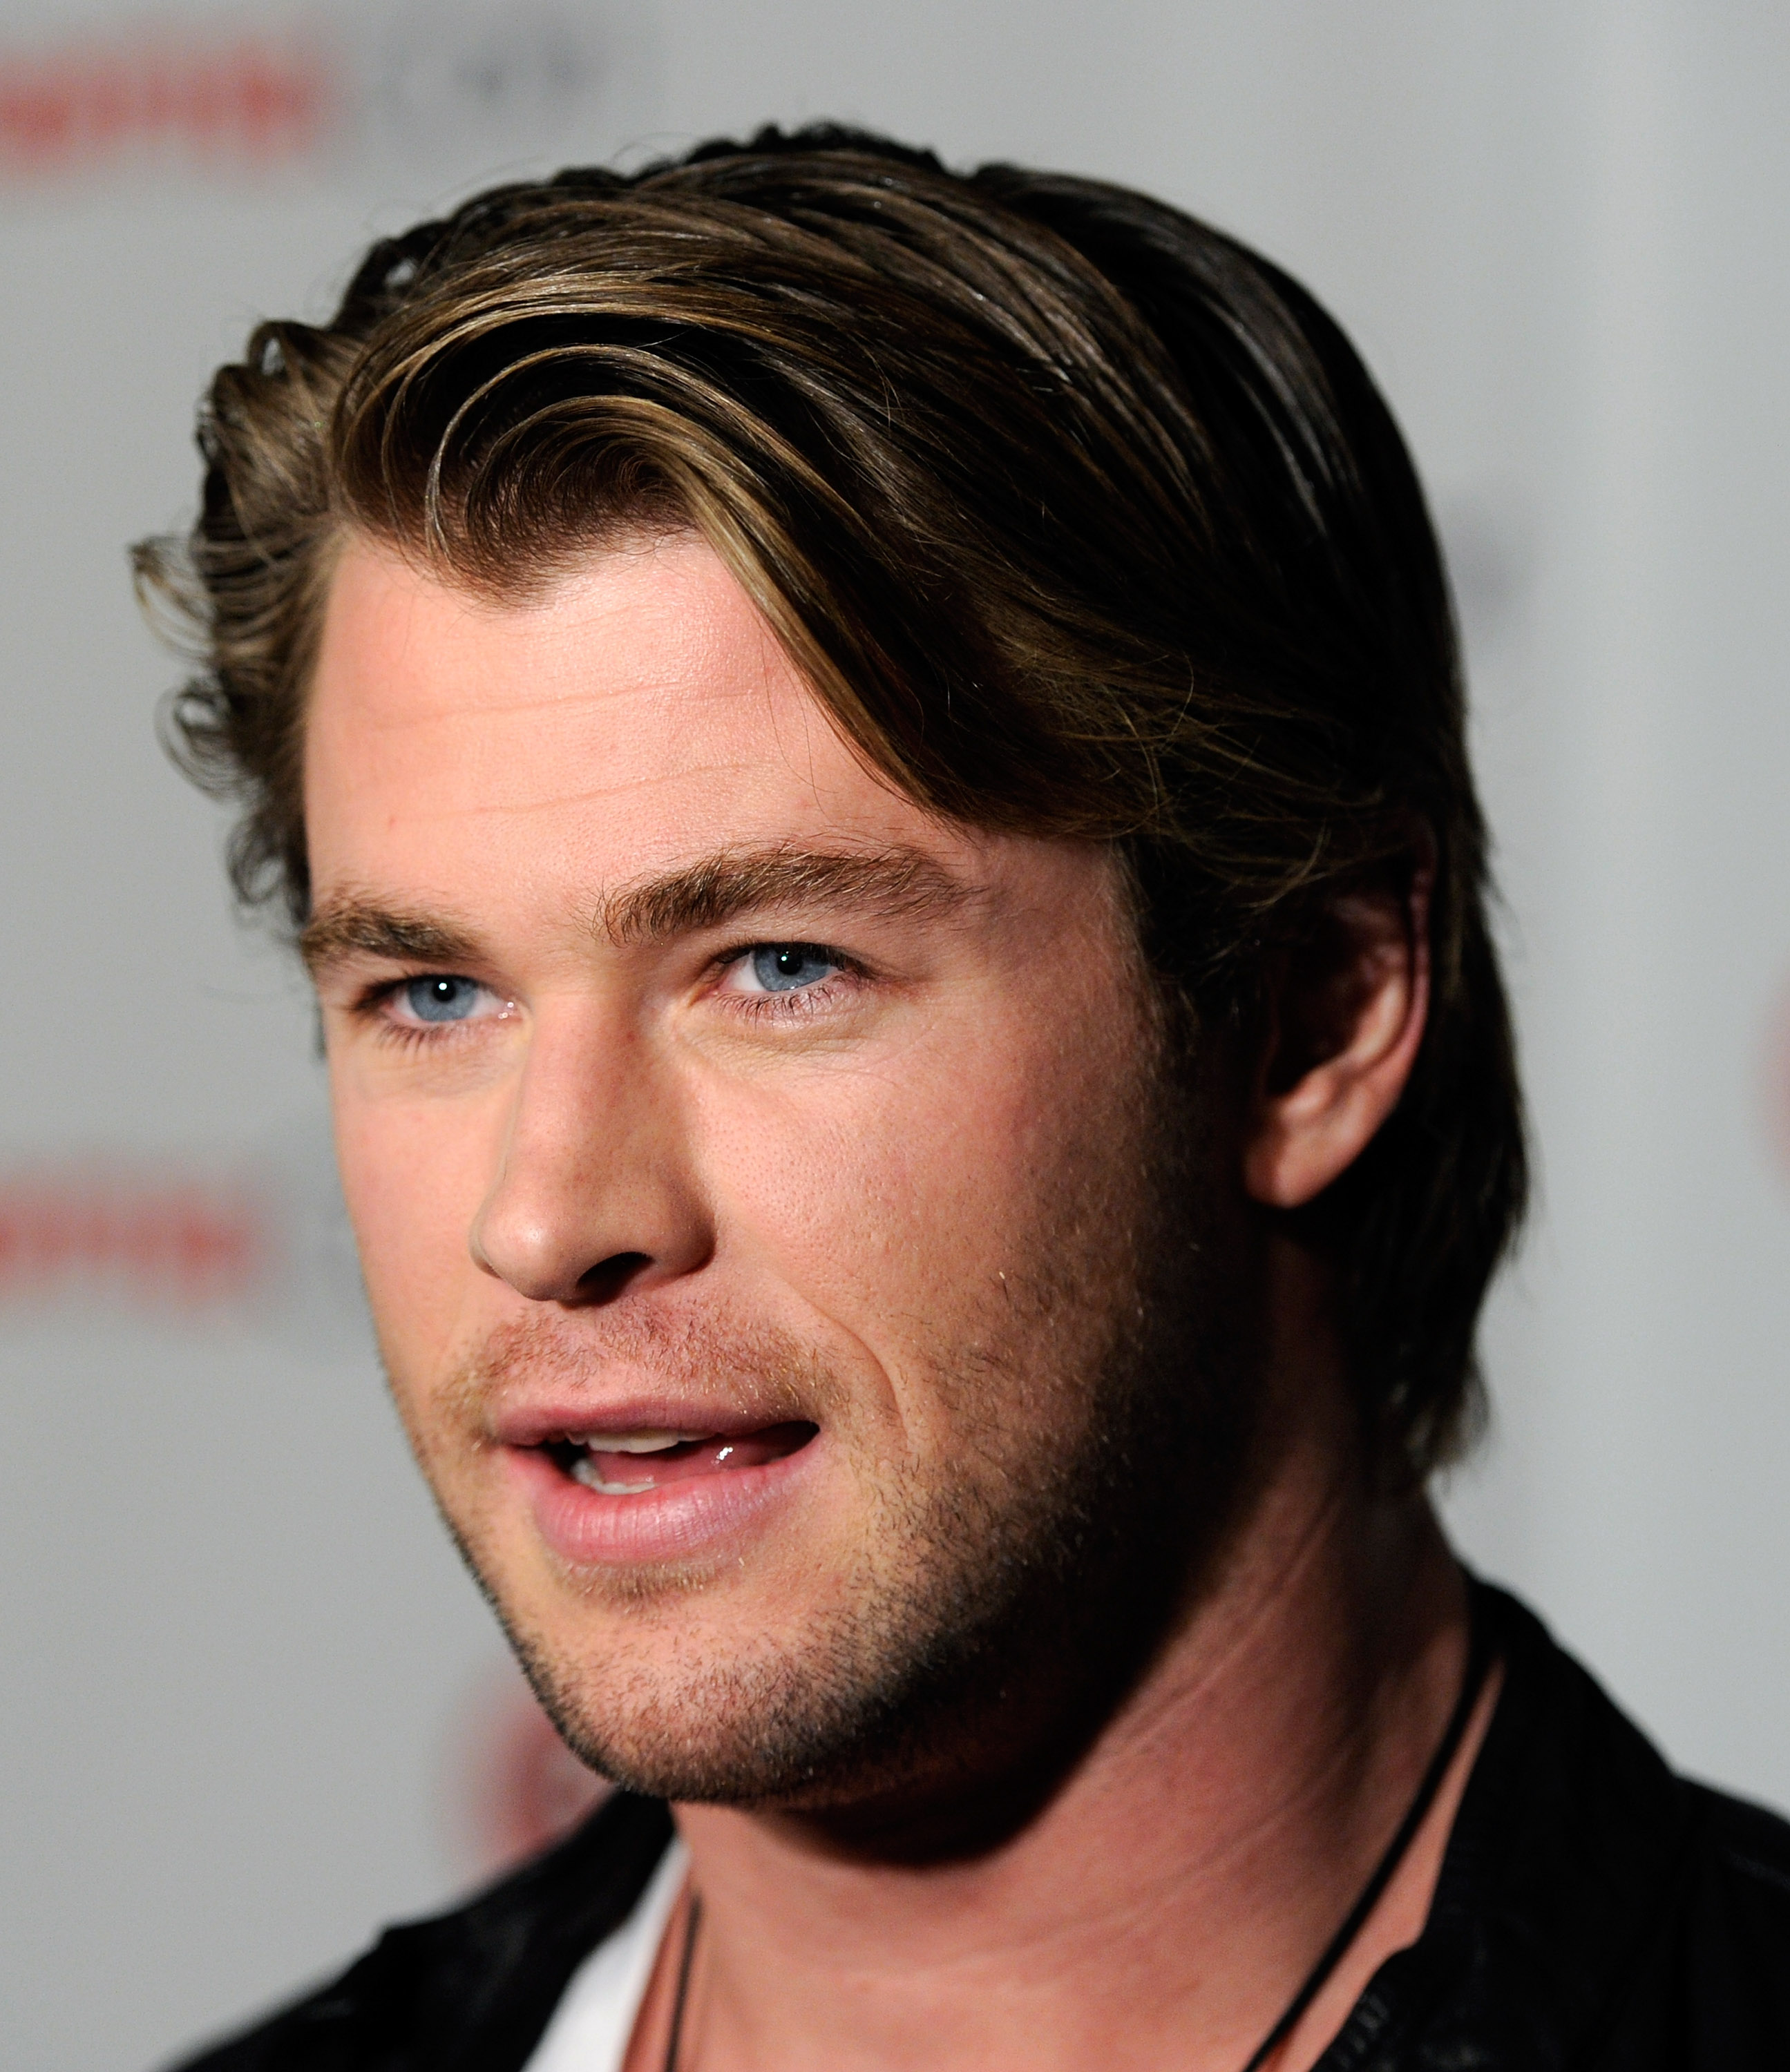 'Thor: The Dark World' Star Chris Hemsworth's 17 Best Hair